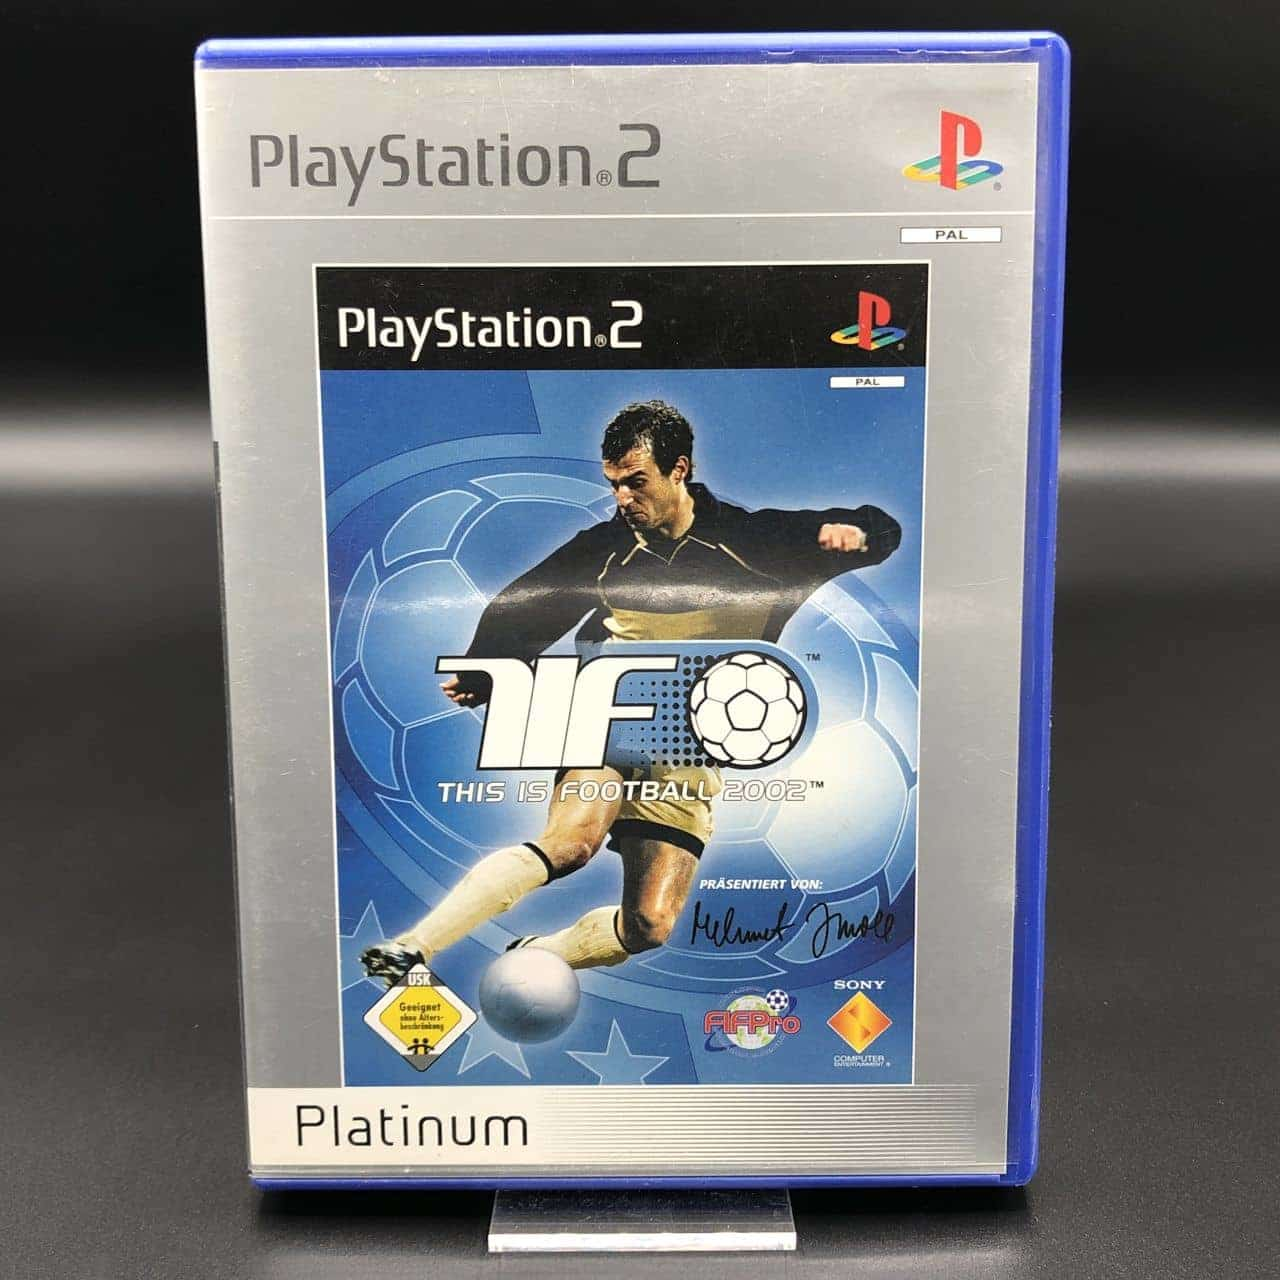 PS2 This Is Football 2002 (Platinum) (ohne Anleitung) (Gut) Sony PlayStation 2